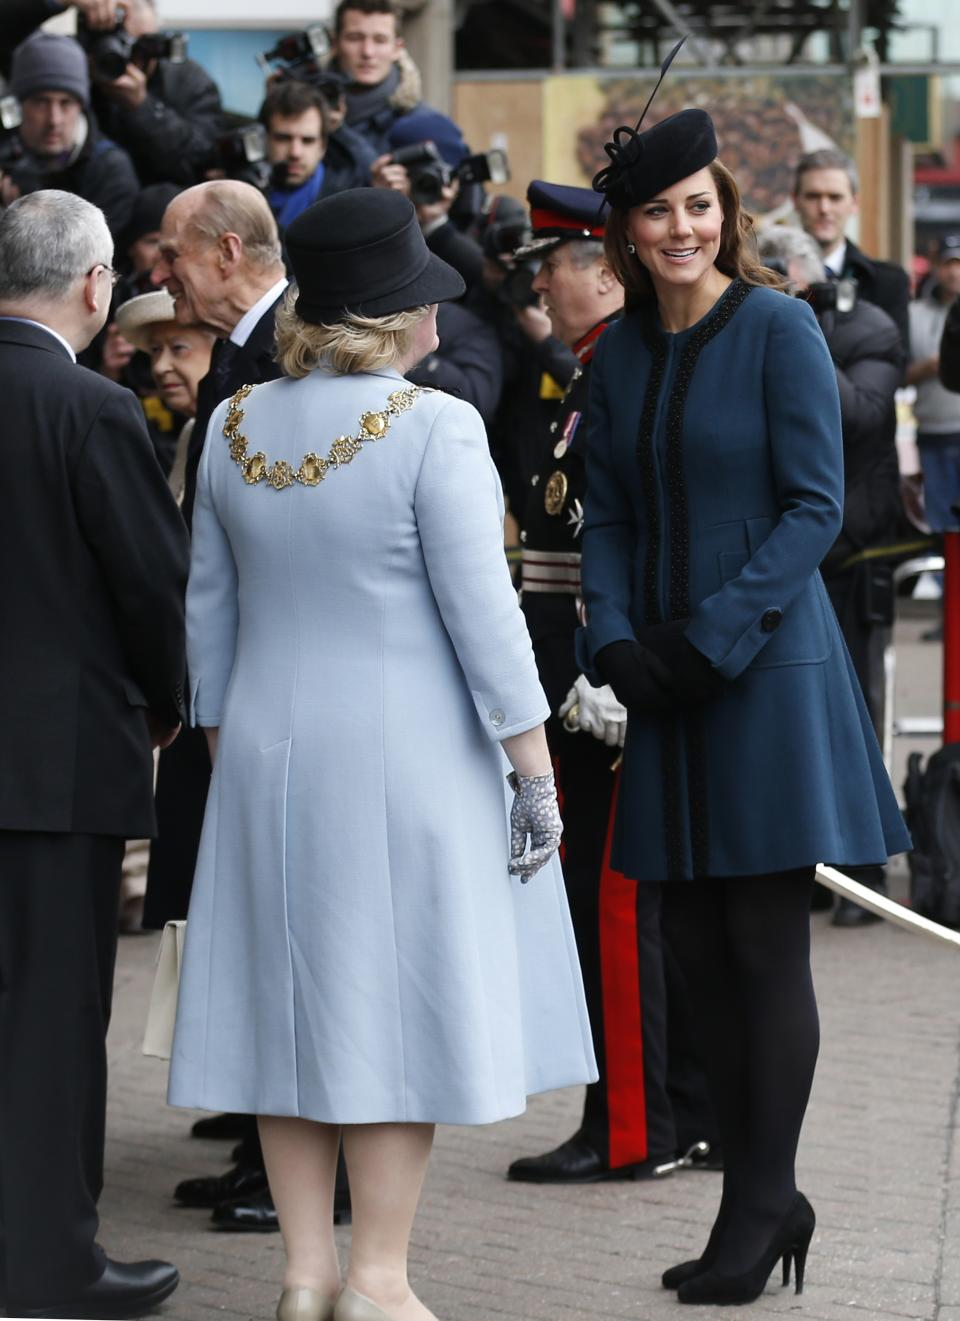 Britain's Kate, Duchess of Cambridge, right, accompanies Queen Elizabeth II and Prince Philip, obscured at left, as they arrive at Baker Street underground station in London for a visit to mark the 150th anniversary of the London Underground, Wednesday, March 20, 2013. (AP Photo/Sang Tan)